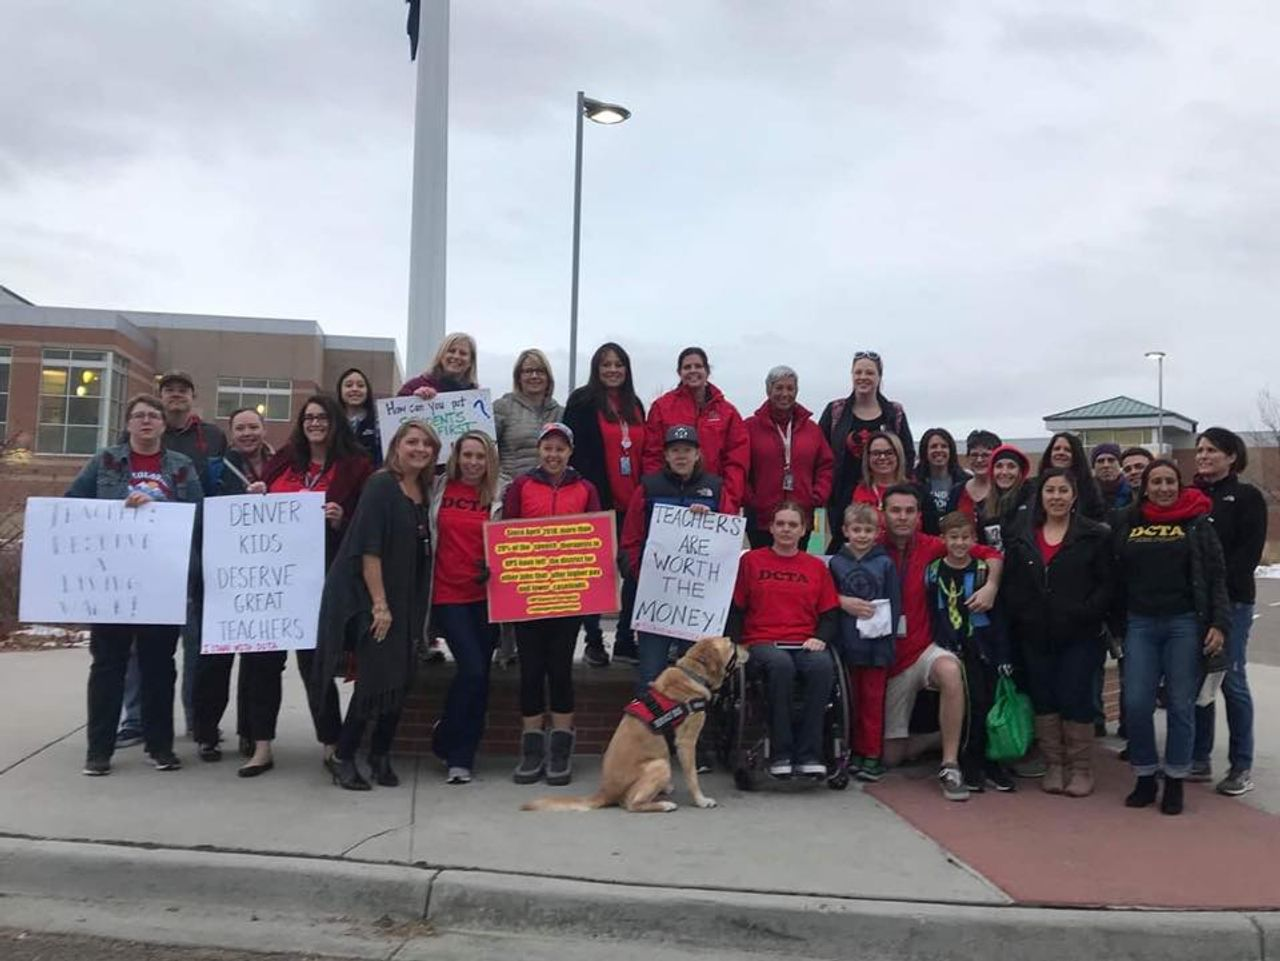 Demonstrating Denver, USA teachers, photo DCTA